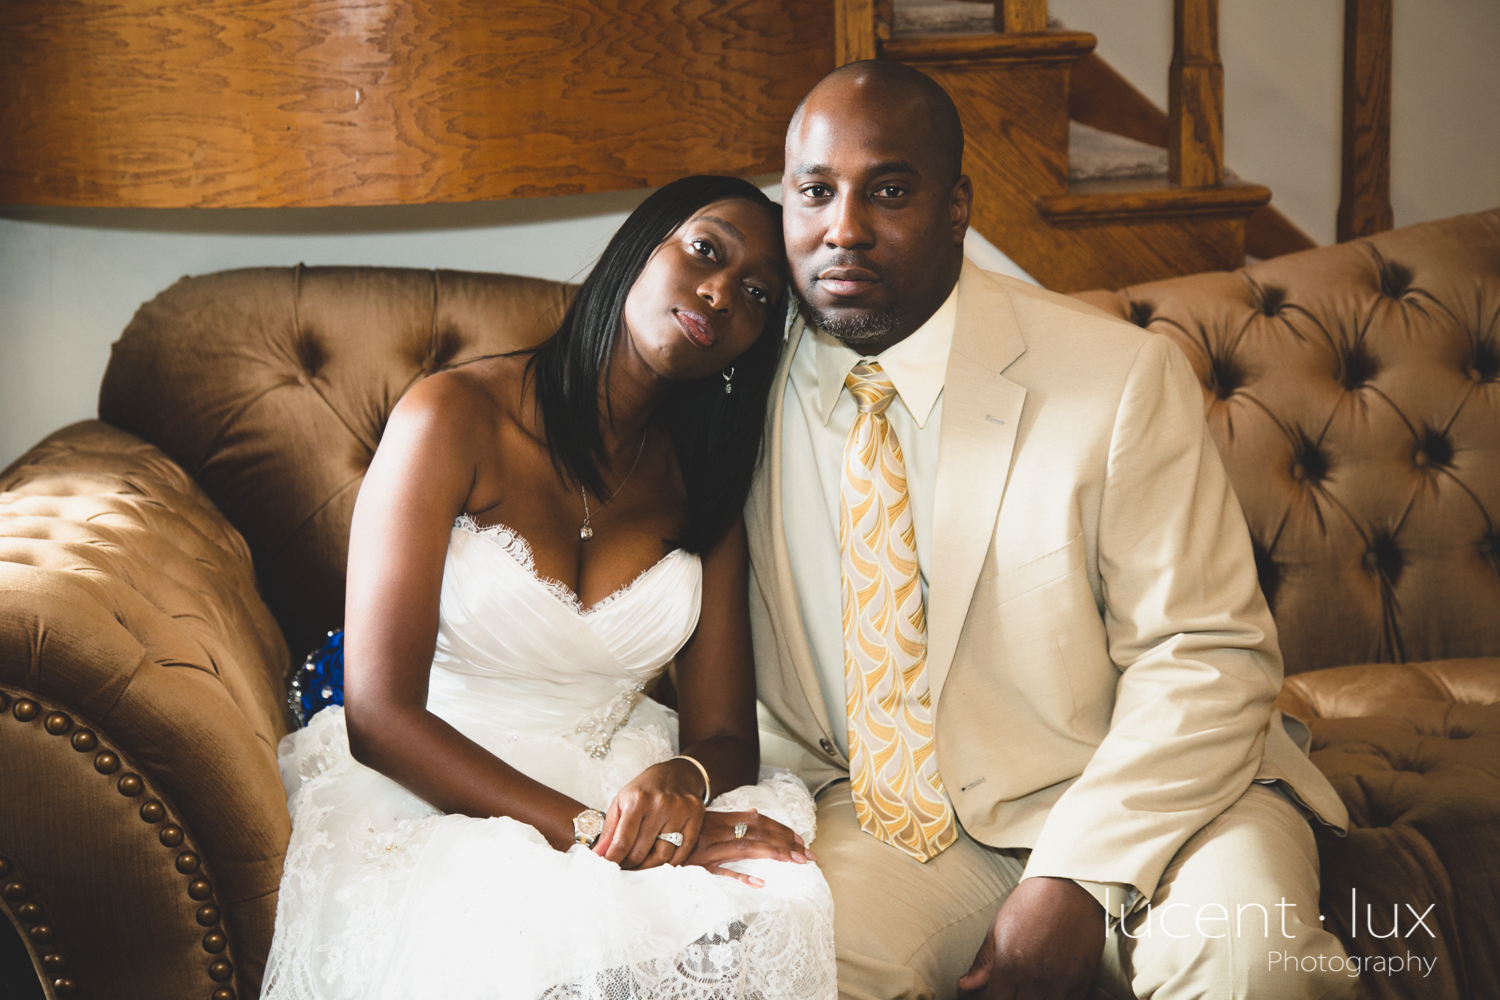 Harford_County_Courthouse_Bel_Air_Maryland_Wedding_Photographer_Maryland_Wedding_Photography-120.jpg